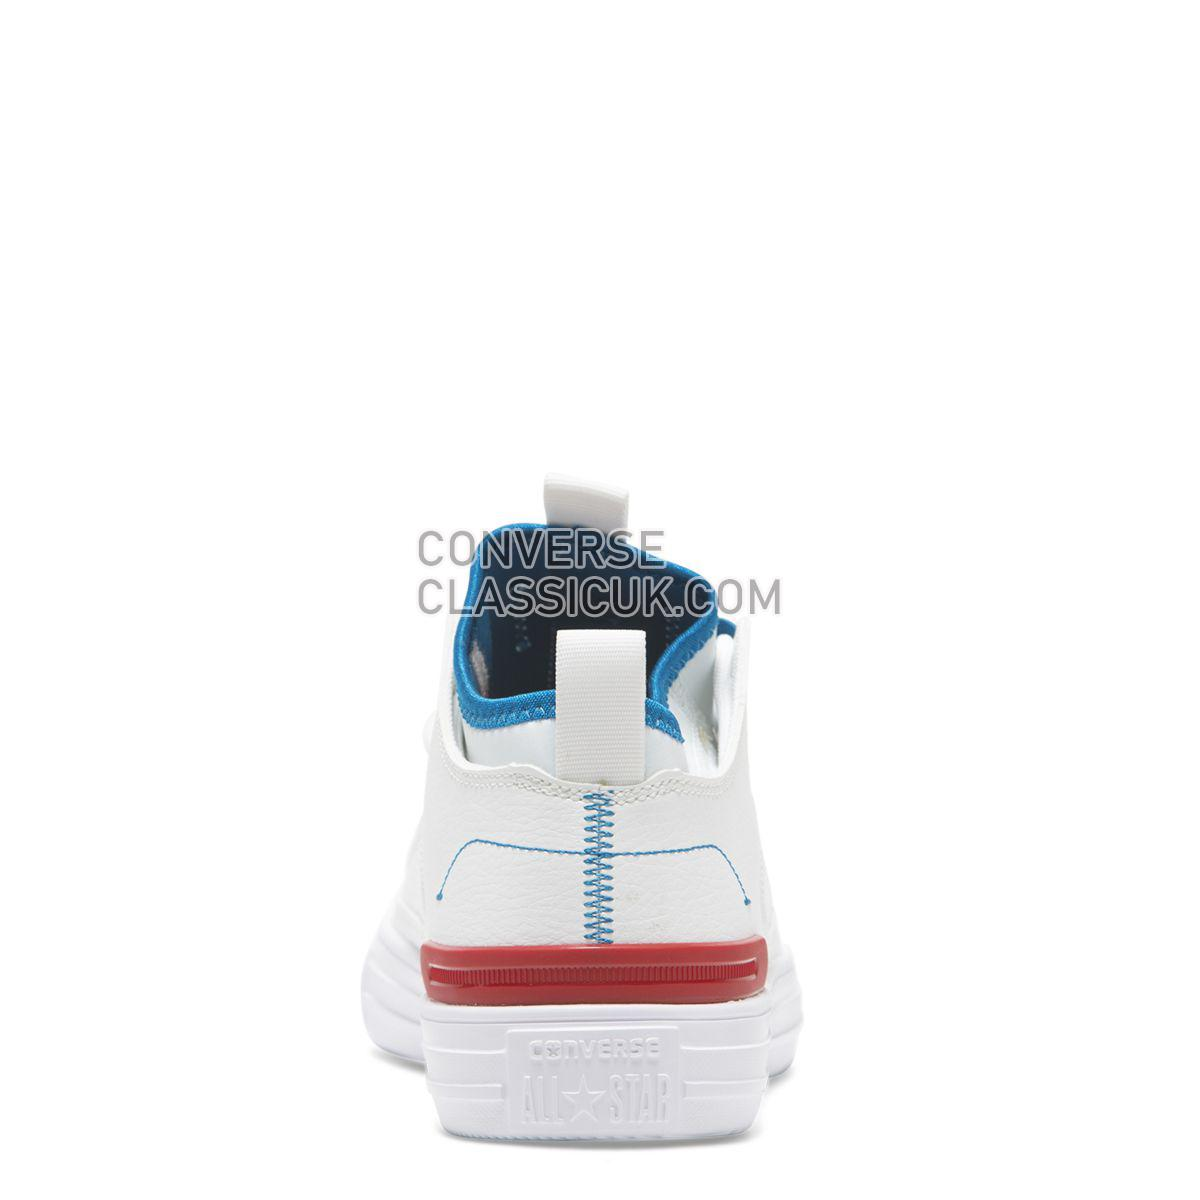 Converse Chuck Taylor All Star Ultra Shoot For The Moon Low Top White Mens Womens Unisex 165345 White/Enamel Red/Imperial Blue Shoes